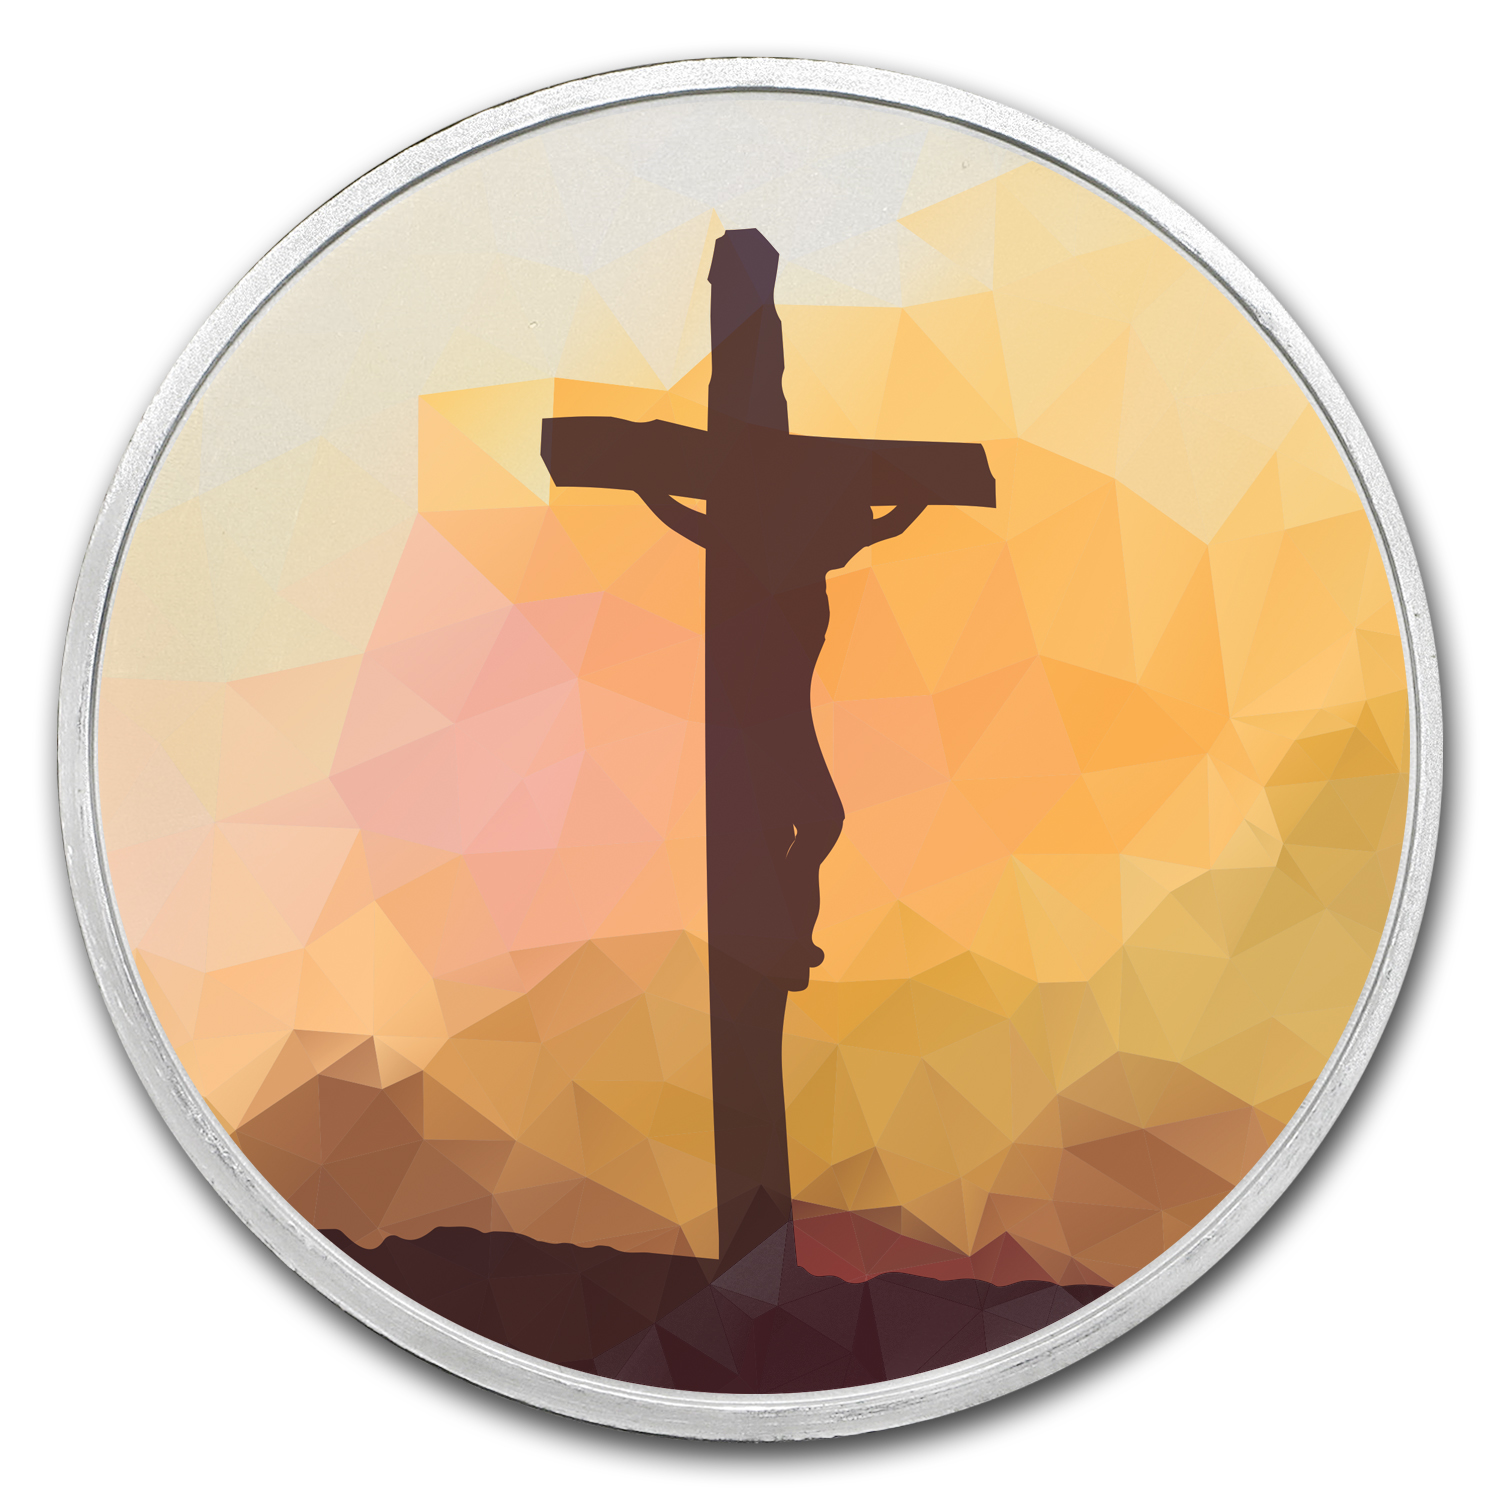 1 oz Silver Colorized Round - APMEX (Jesus on the Cross)